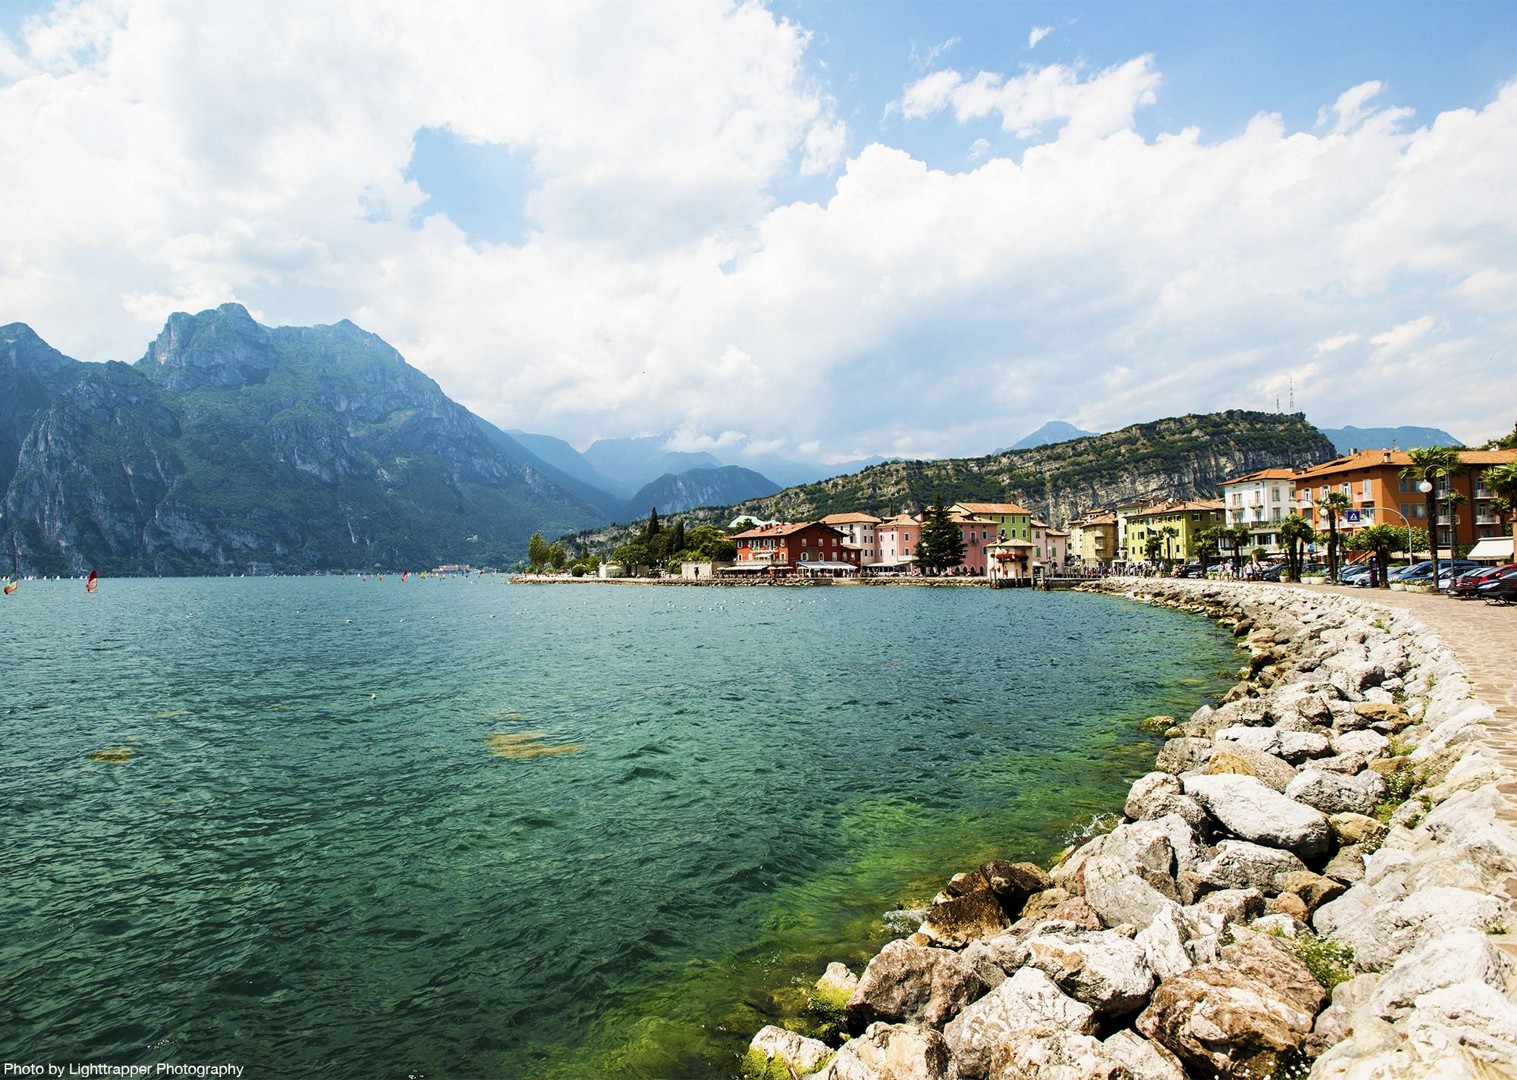 lake-garda-cycling-tour-italy-leisure-beautidul-sights.jpg - Italy - Lake Garda to Venice - Self-Guided Leisure Cycling Holiday - Leisure Cycling